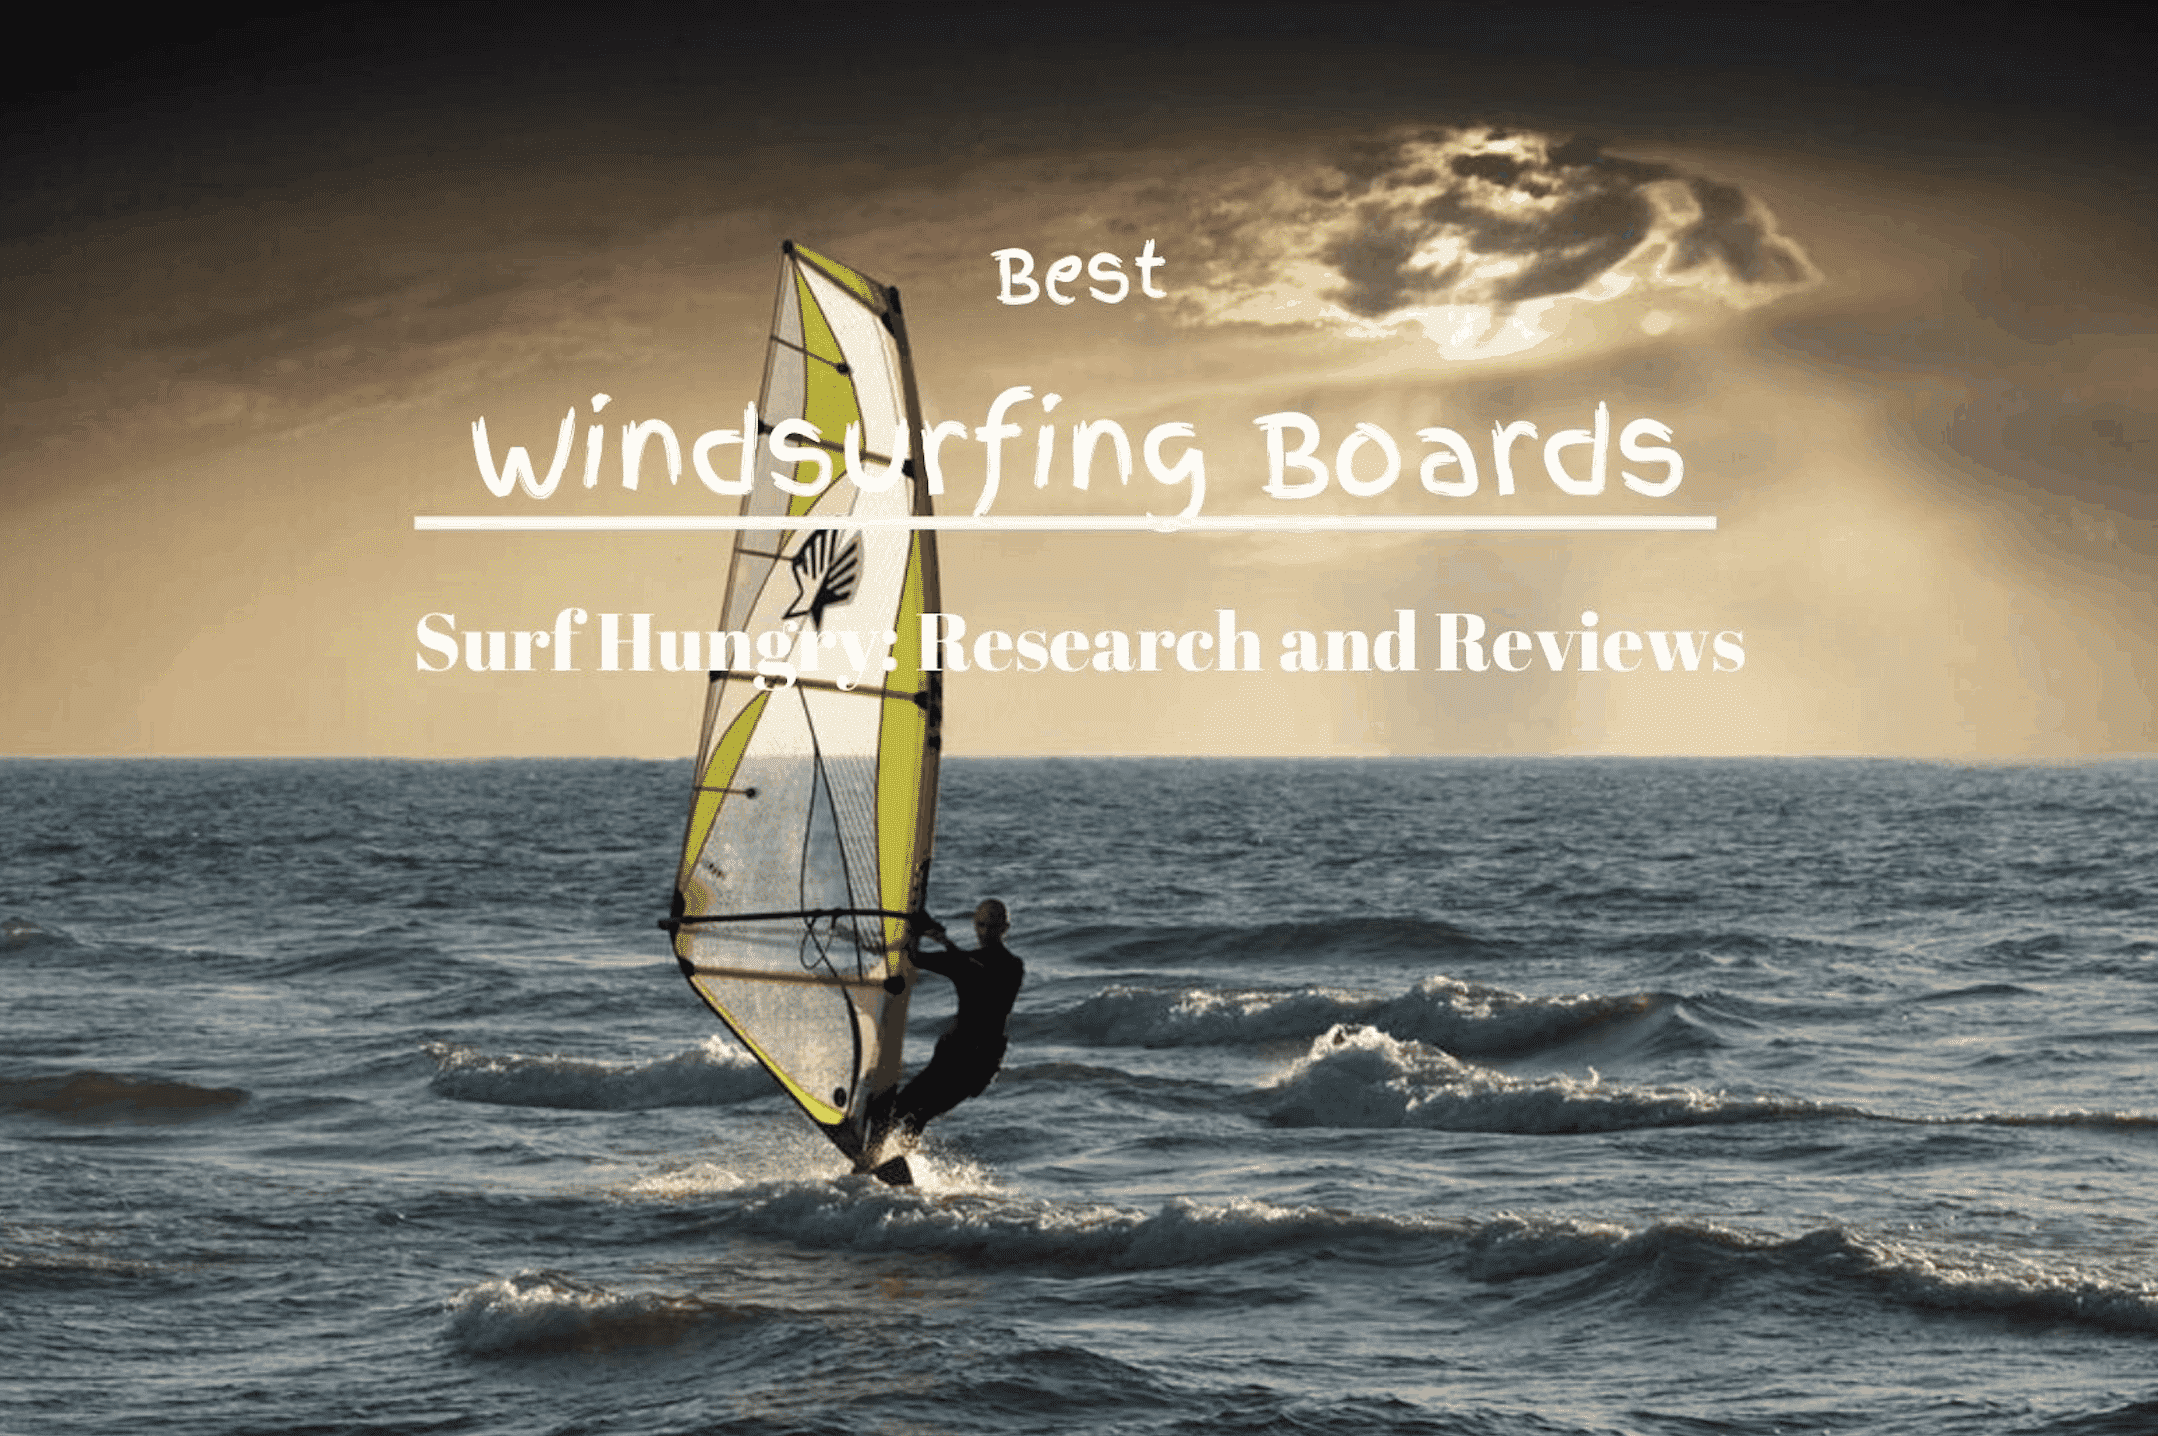 best windsurfing boards